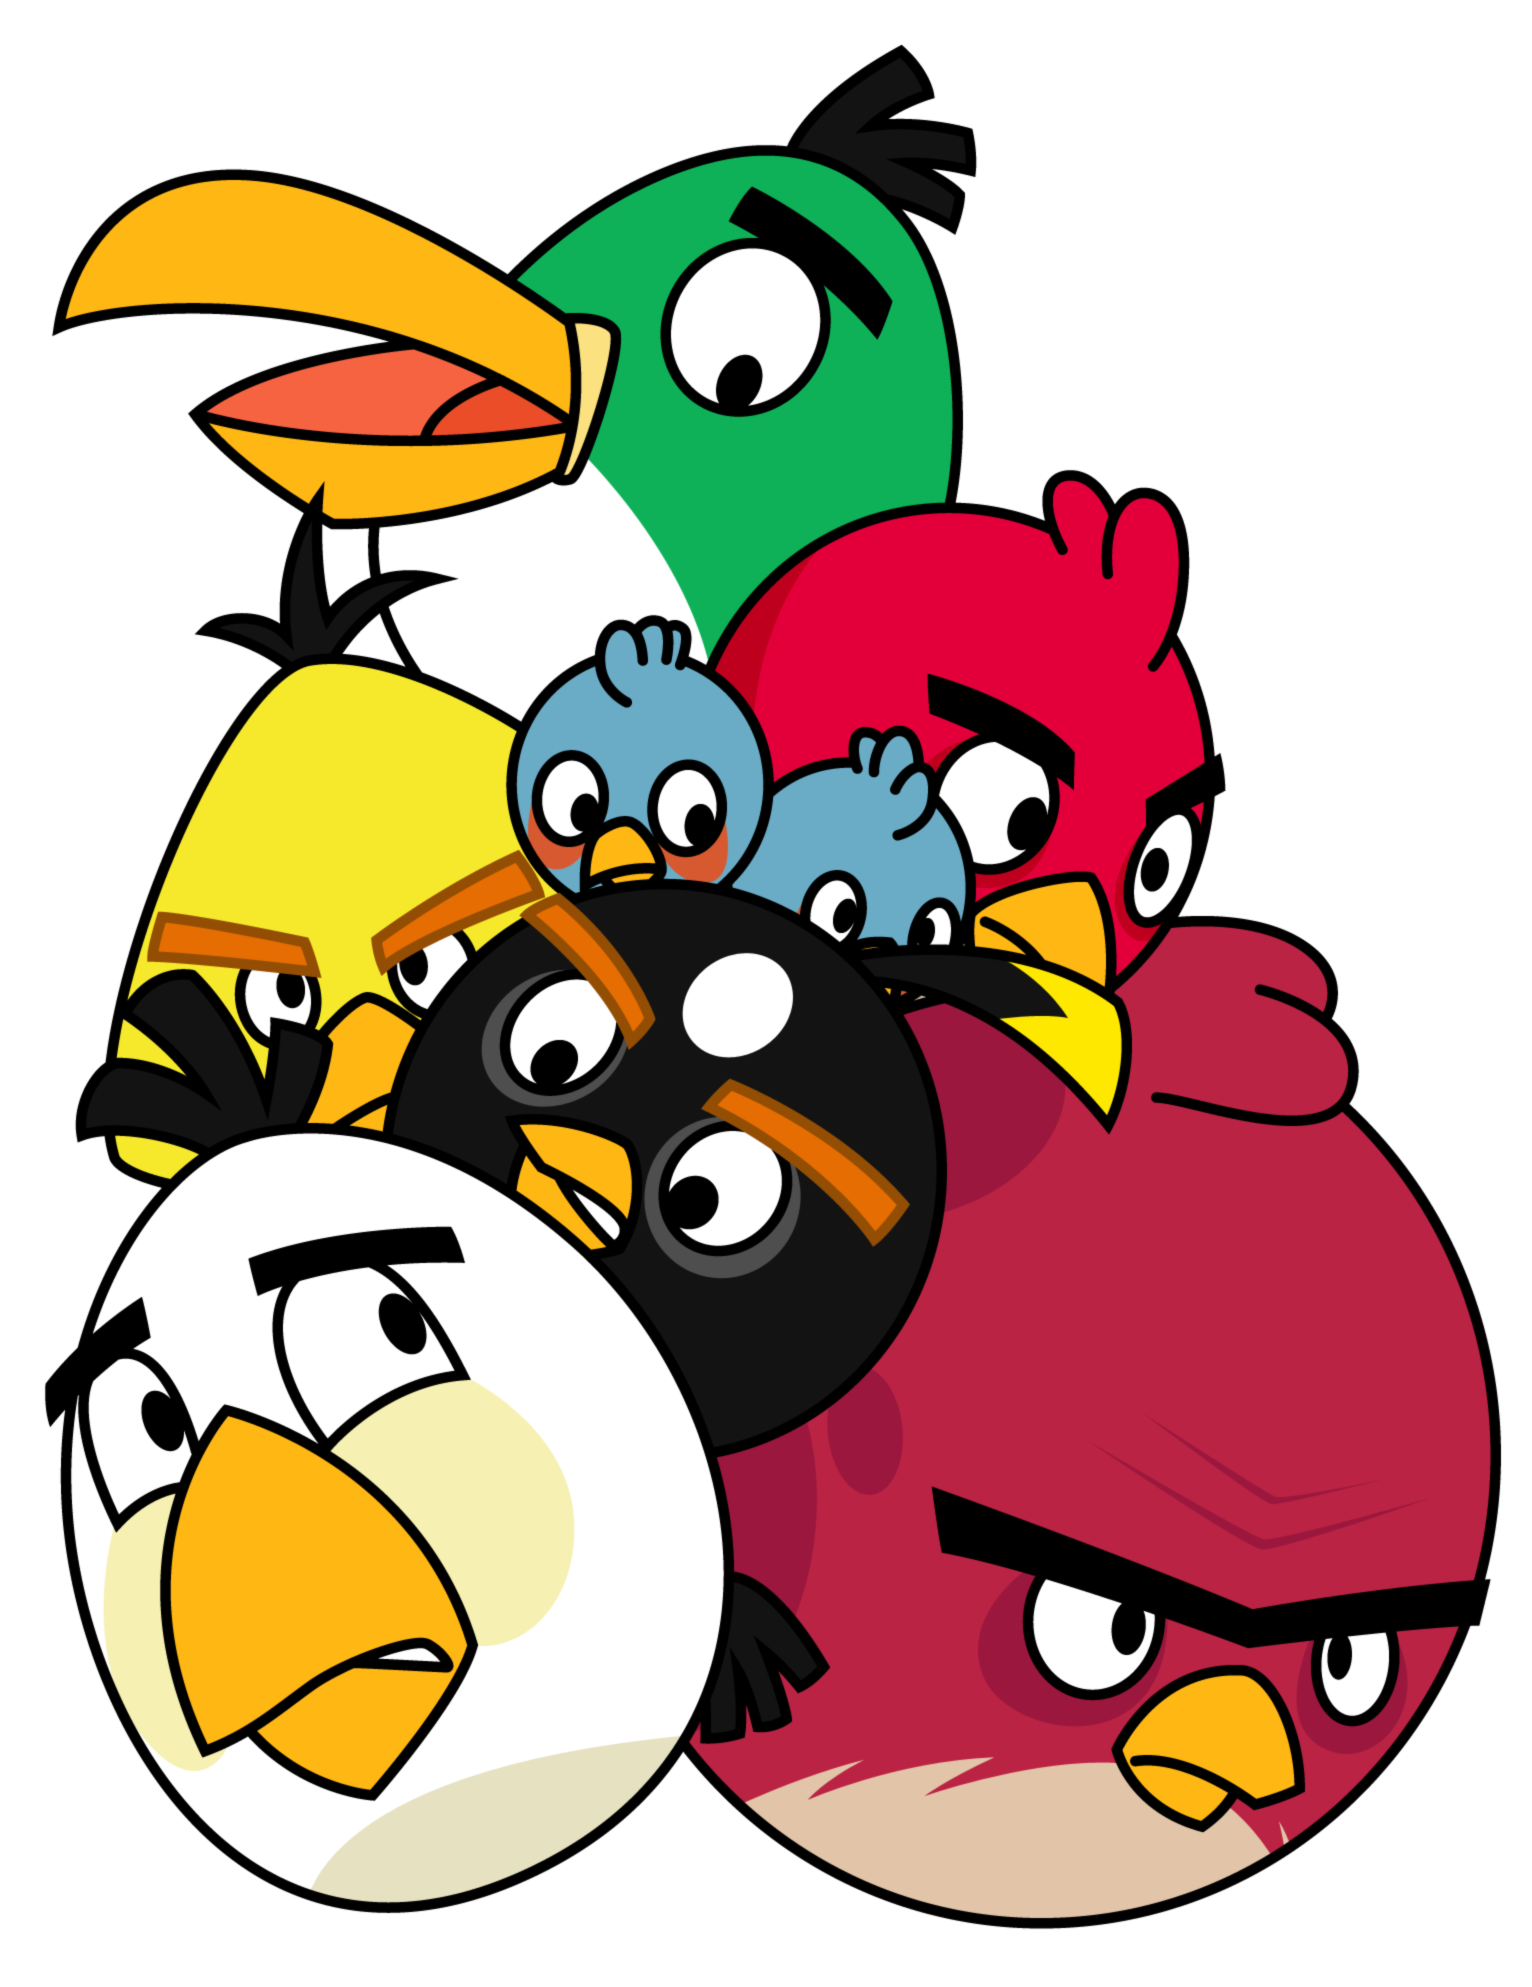 1532x1987 Pile Of Angry Birds By Gav Imp